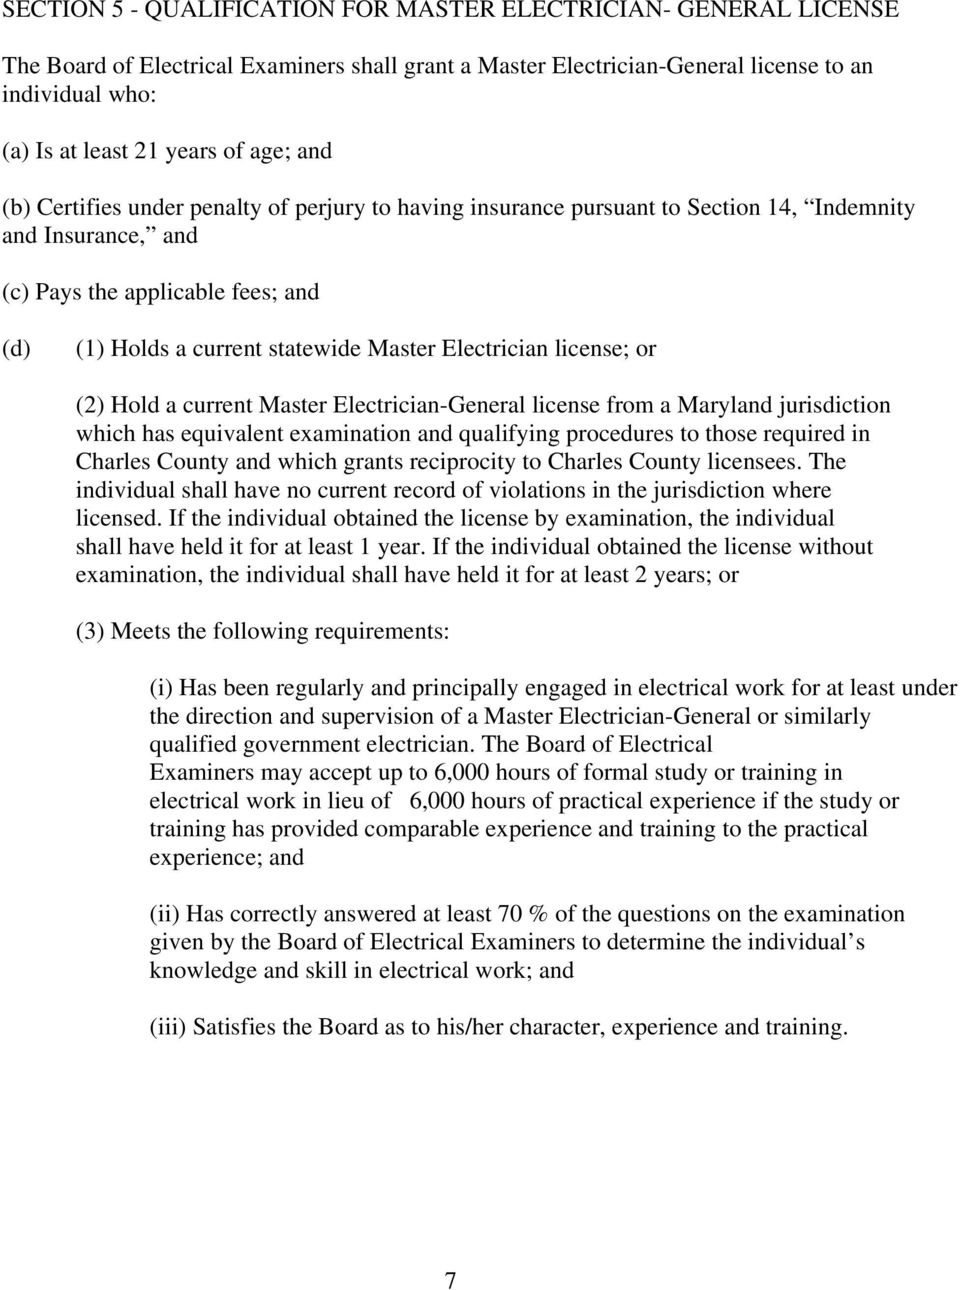 Electrician license; or (2) Hold a current Master Electrician-General license from a Maryland jurisdiction which has equivalent examination and qualifying procedures to those required in Charles